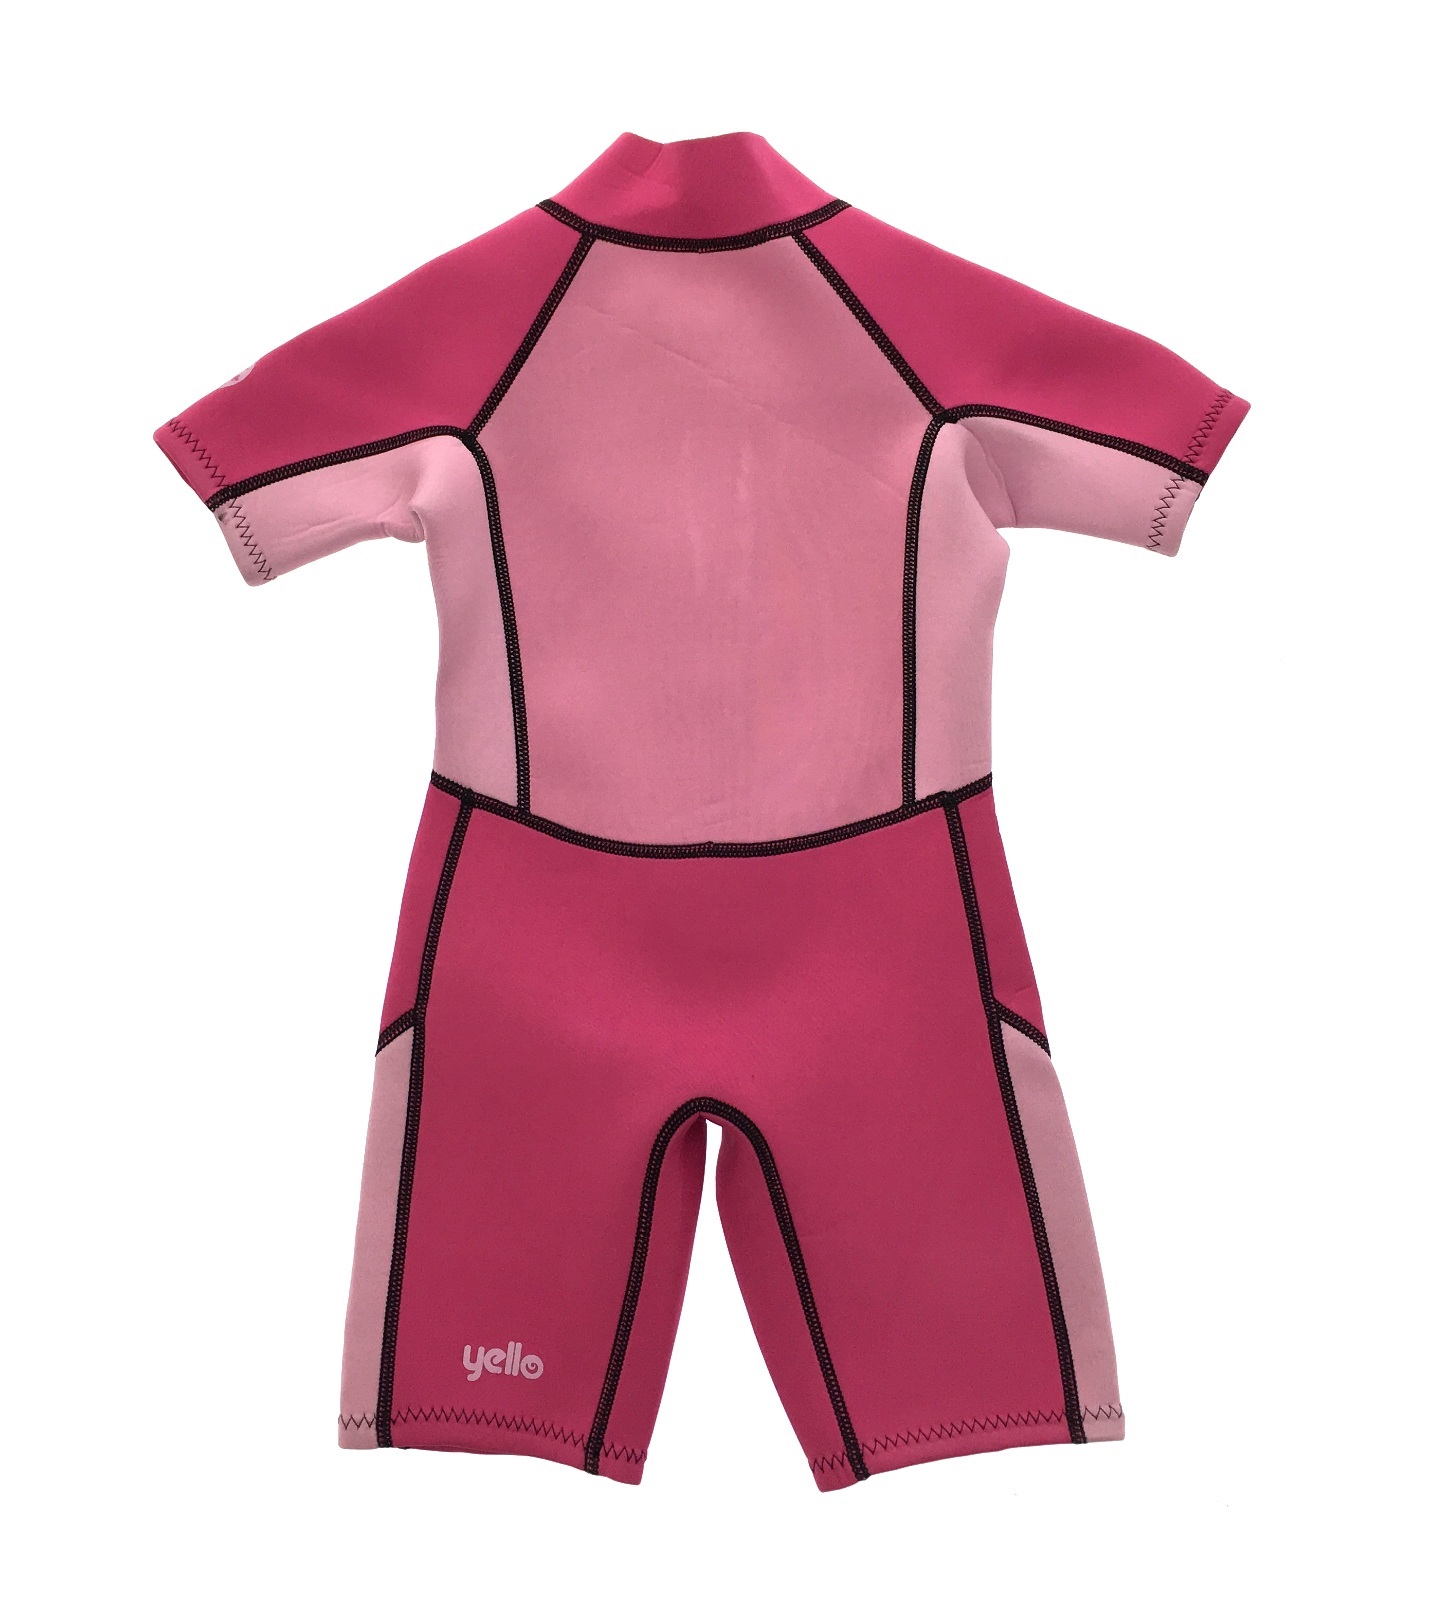 Infantes Ni os Disfraces de playa Shorty Traje Surf 2 mm Neopreno